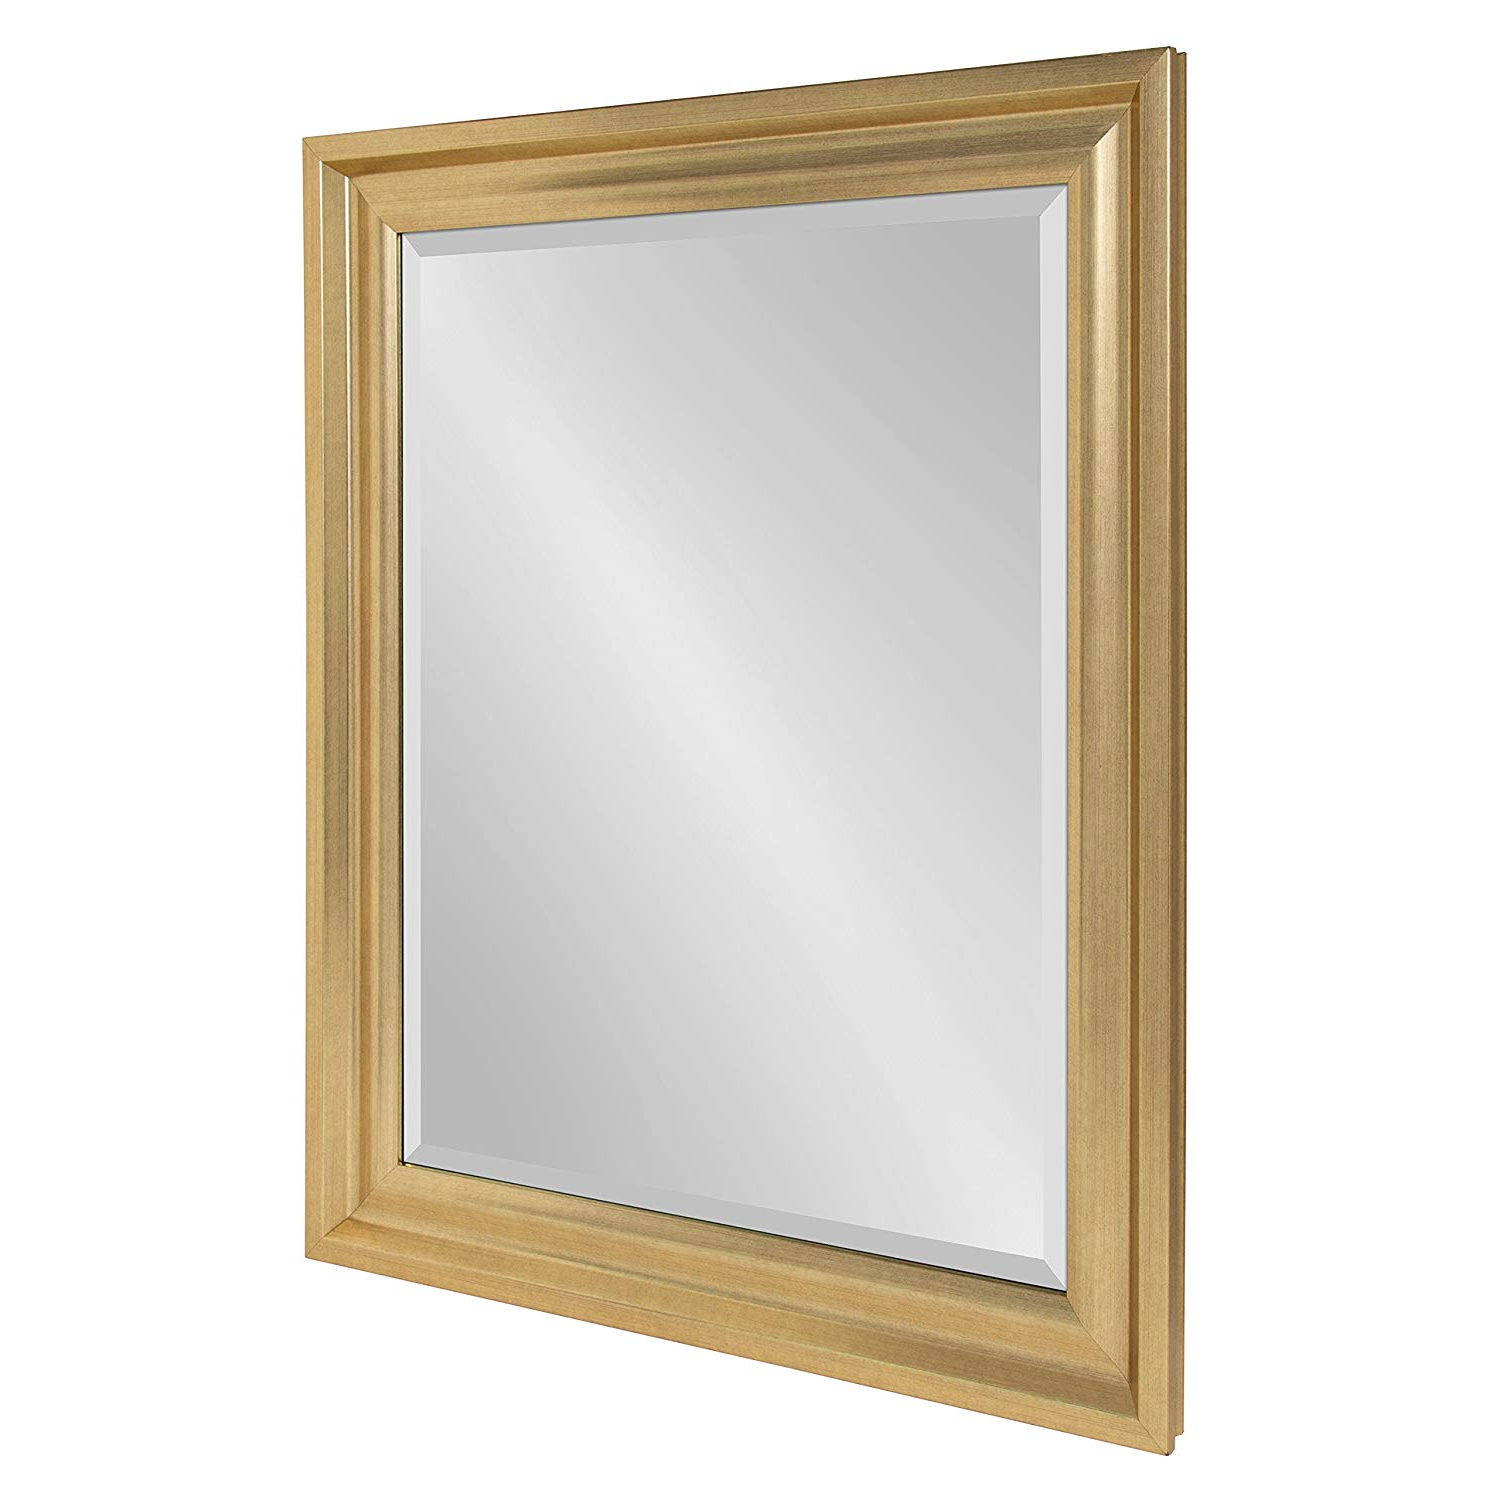 Beveled Wall Mirrors Inside Widely Used Kate And Laurel – Umber Large Framed Rectangle Beveled Wall Mirror, 27.5 X (View 6 of 20)